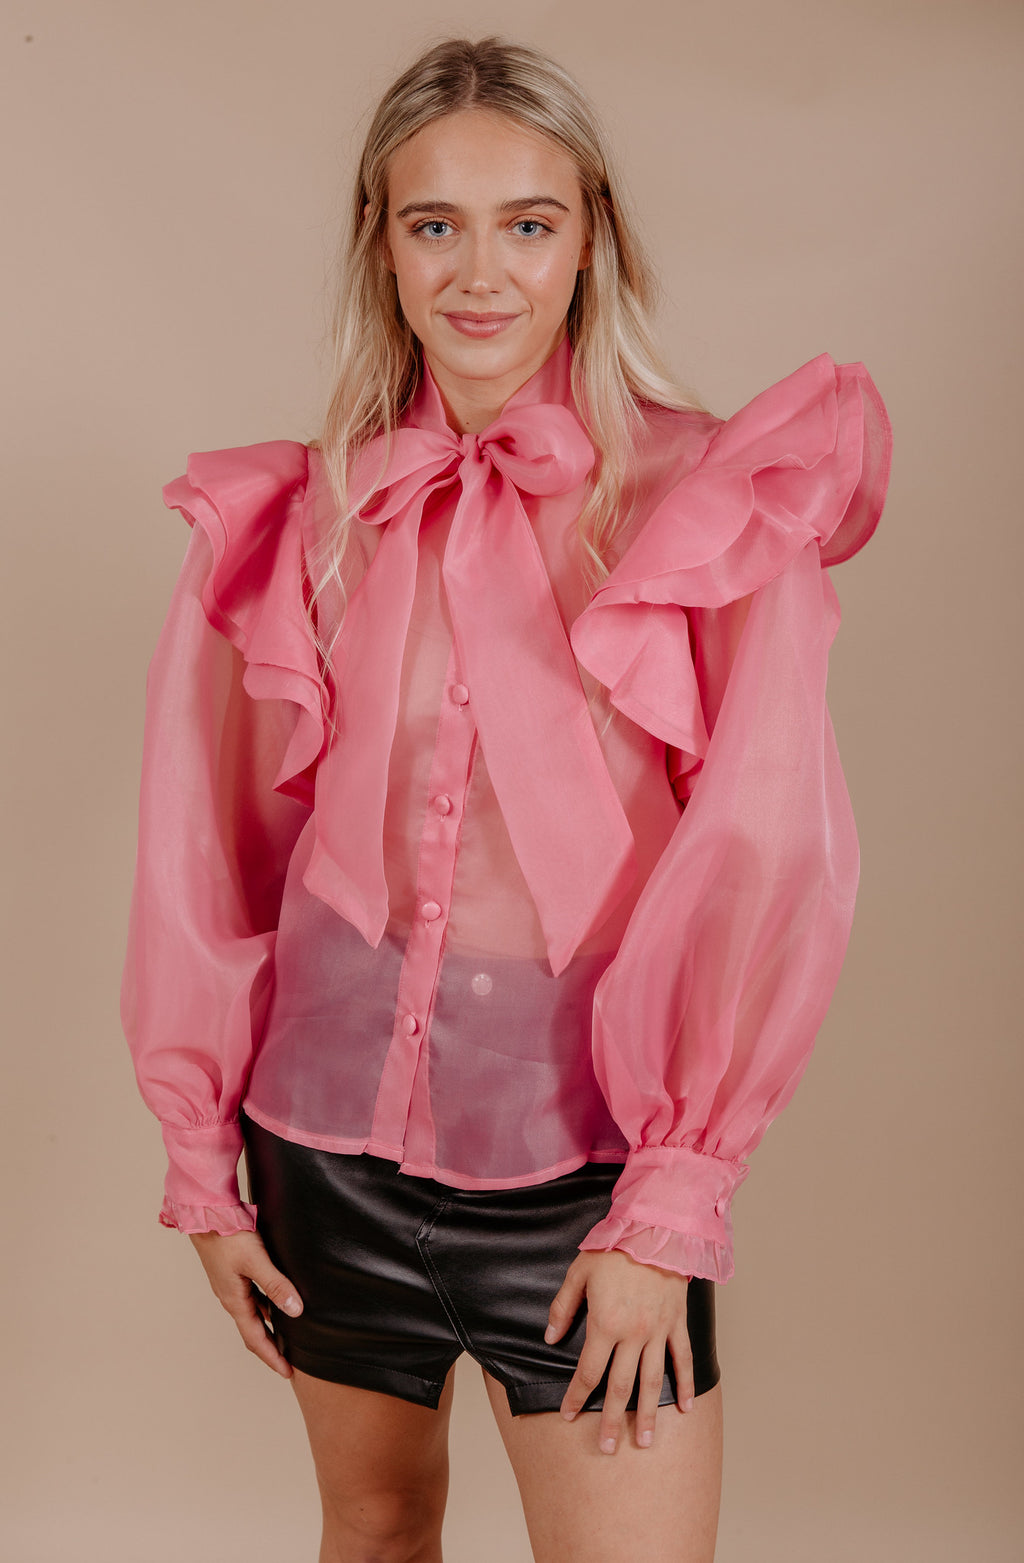 SHEER BLISS BLOUSE